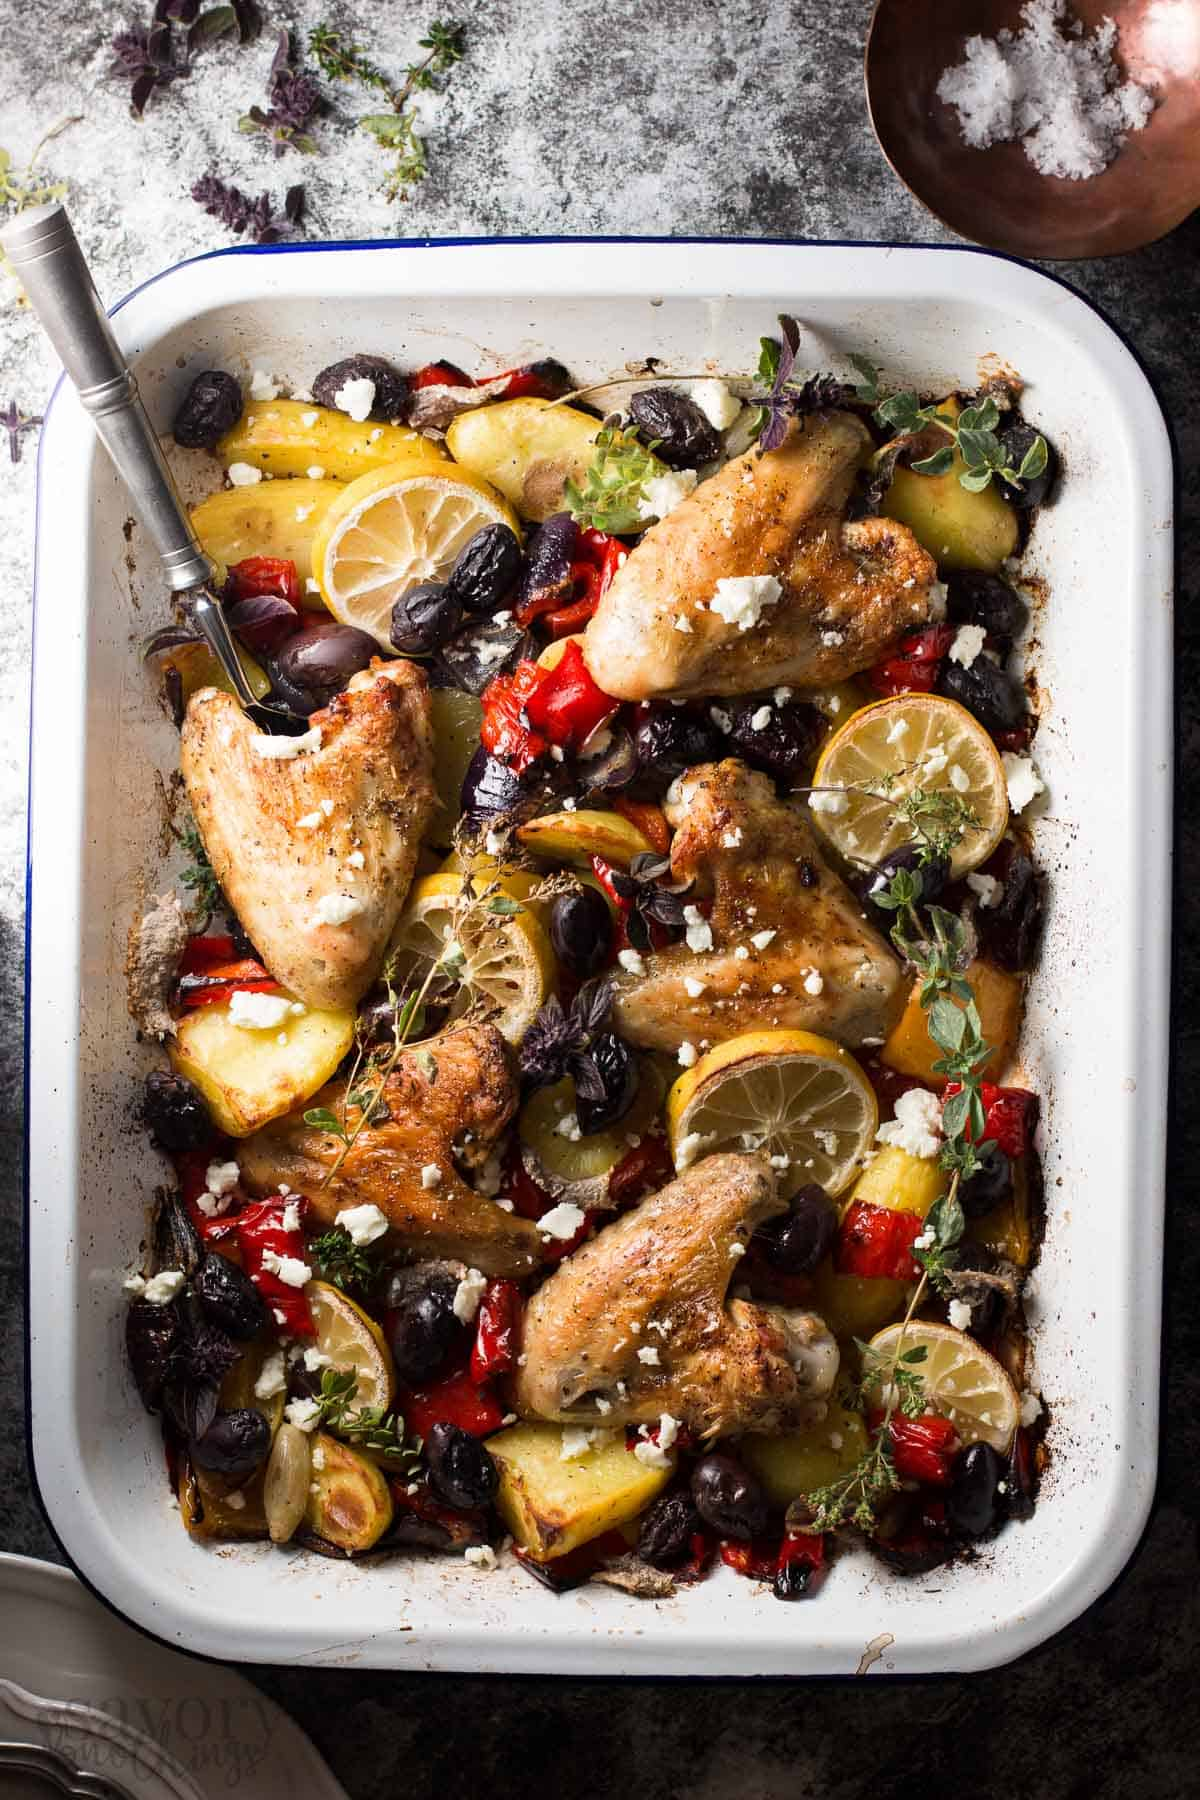 22 Quick & Easy Chicken Dinners Fast and affordable, chicken is king come dinnertime. Whatever cuisine you crave, we've got five-star recipes for you, all under 30 minutes.